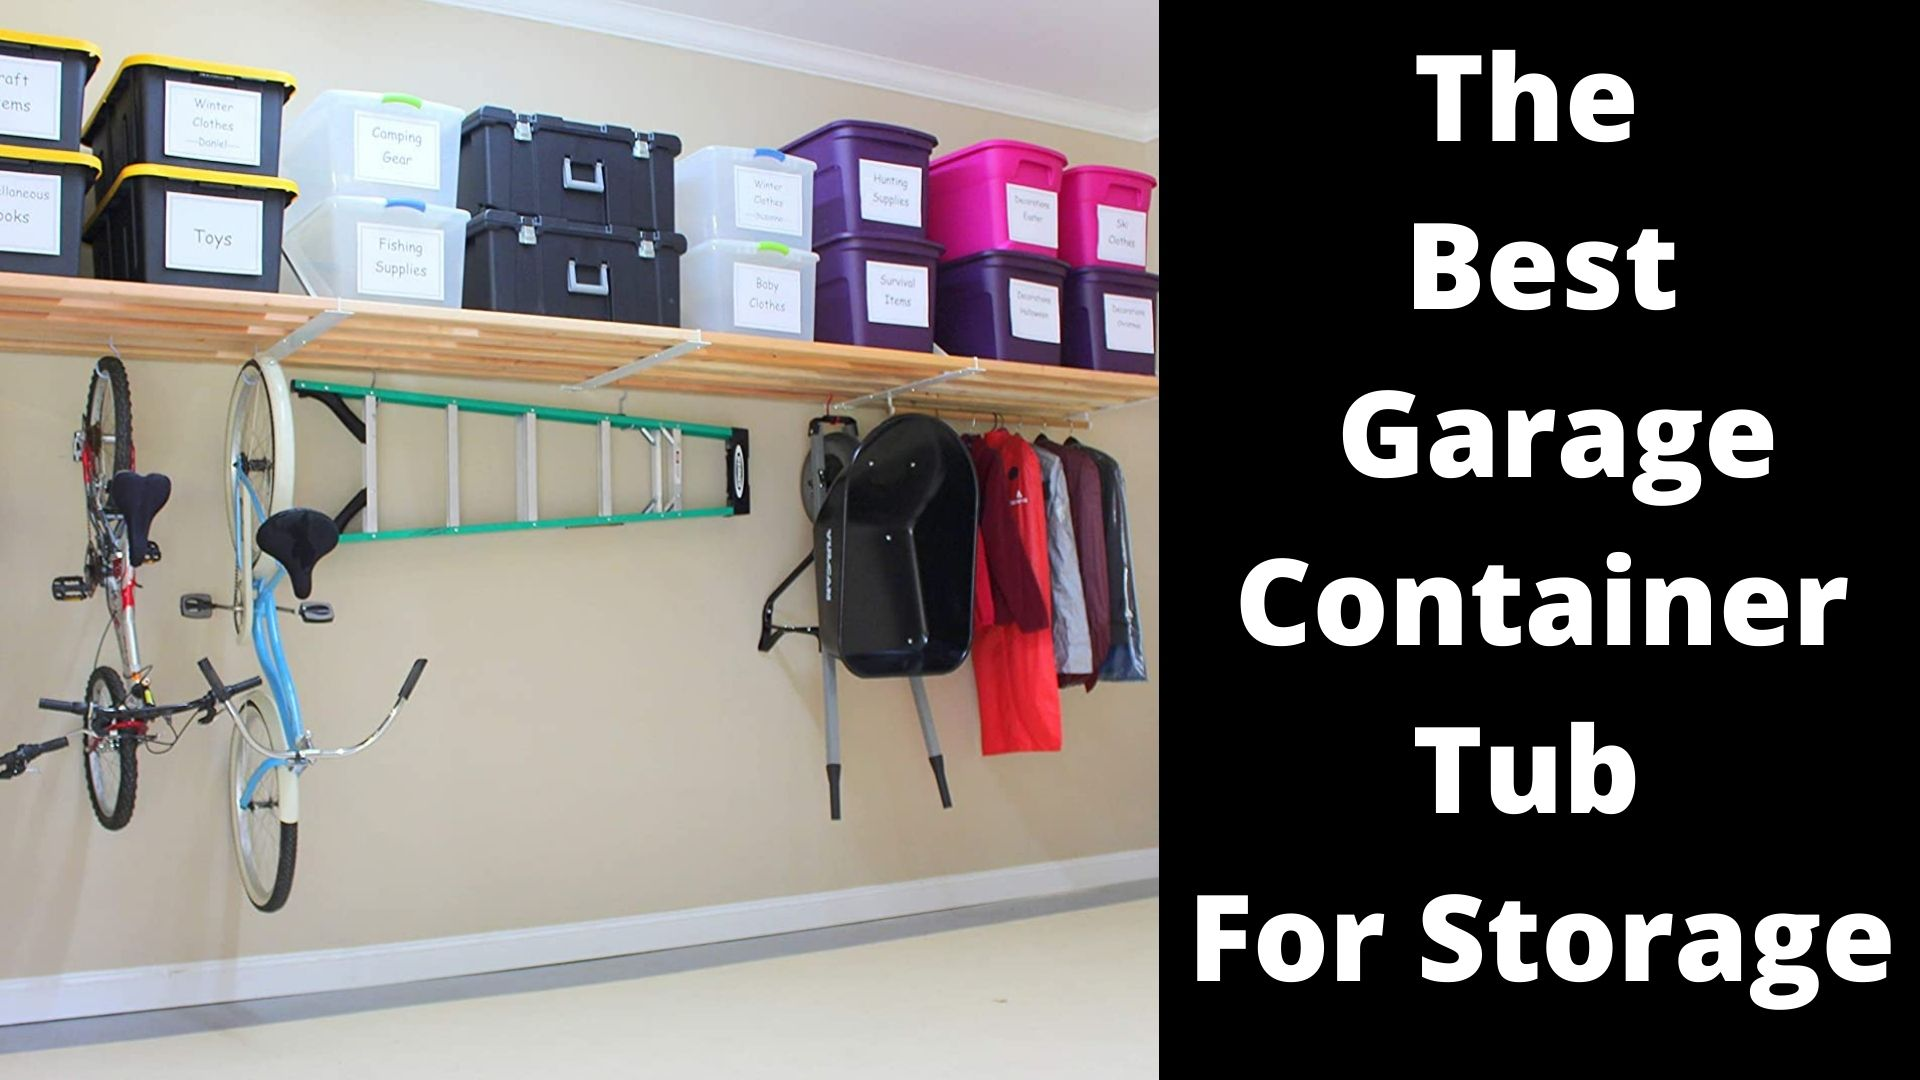 6 The Best Garage Container Tub For Storage – Review 2021